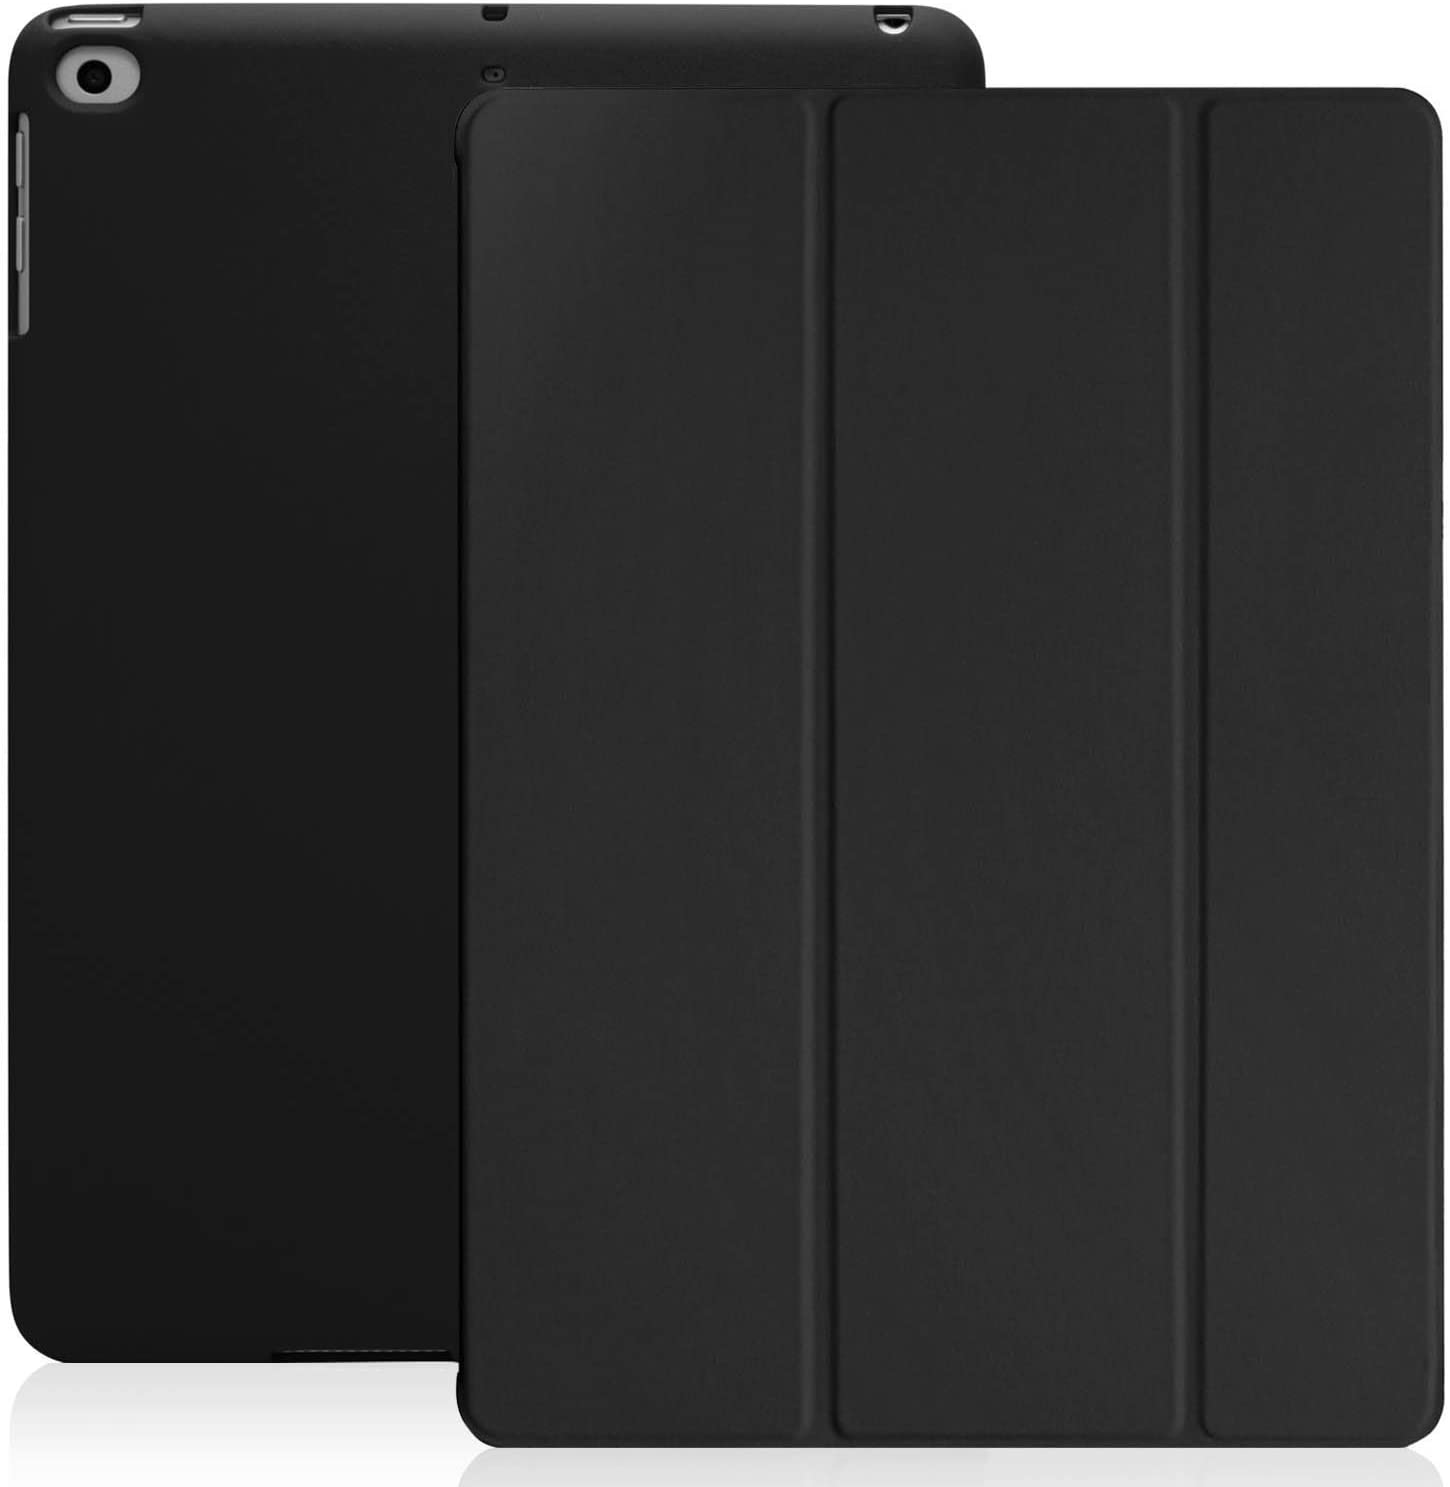 KHOMO iPad 2017 and 2018 9.7 inch Case - Dual Series - Ultra Slim Hard Cover with Auto Sleep Wake Feature - Black